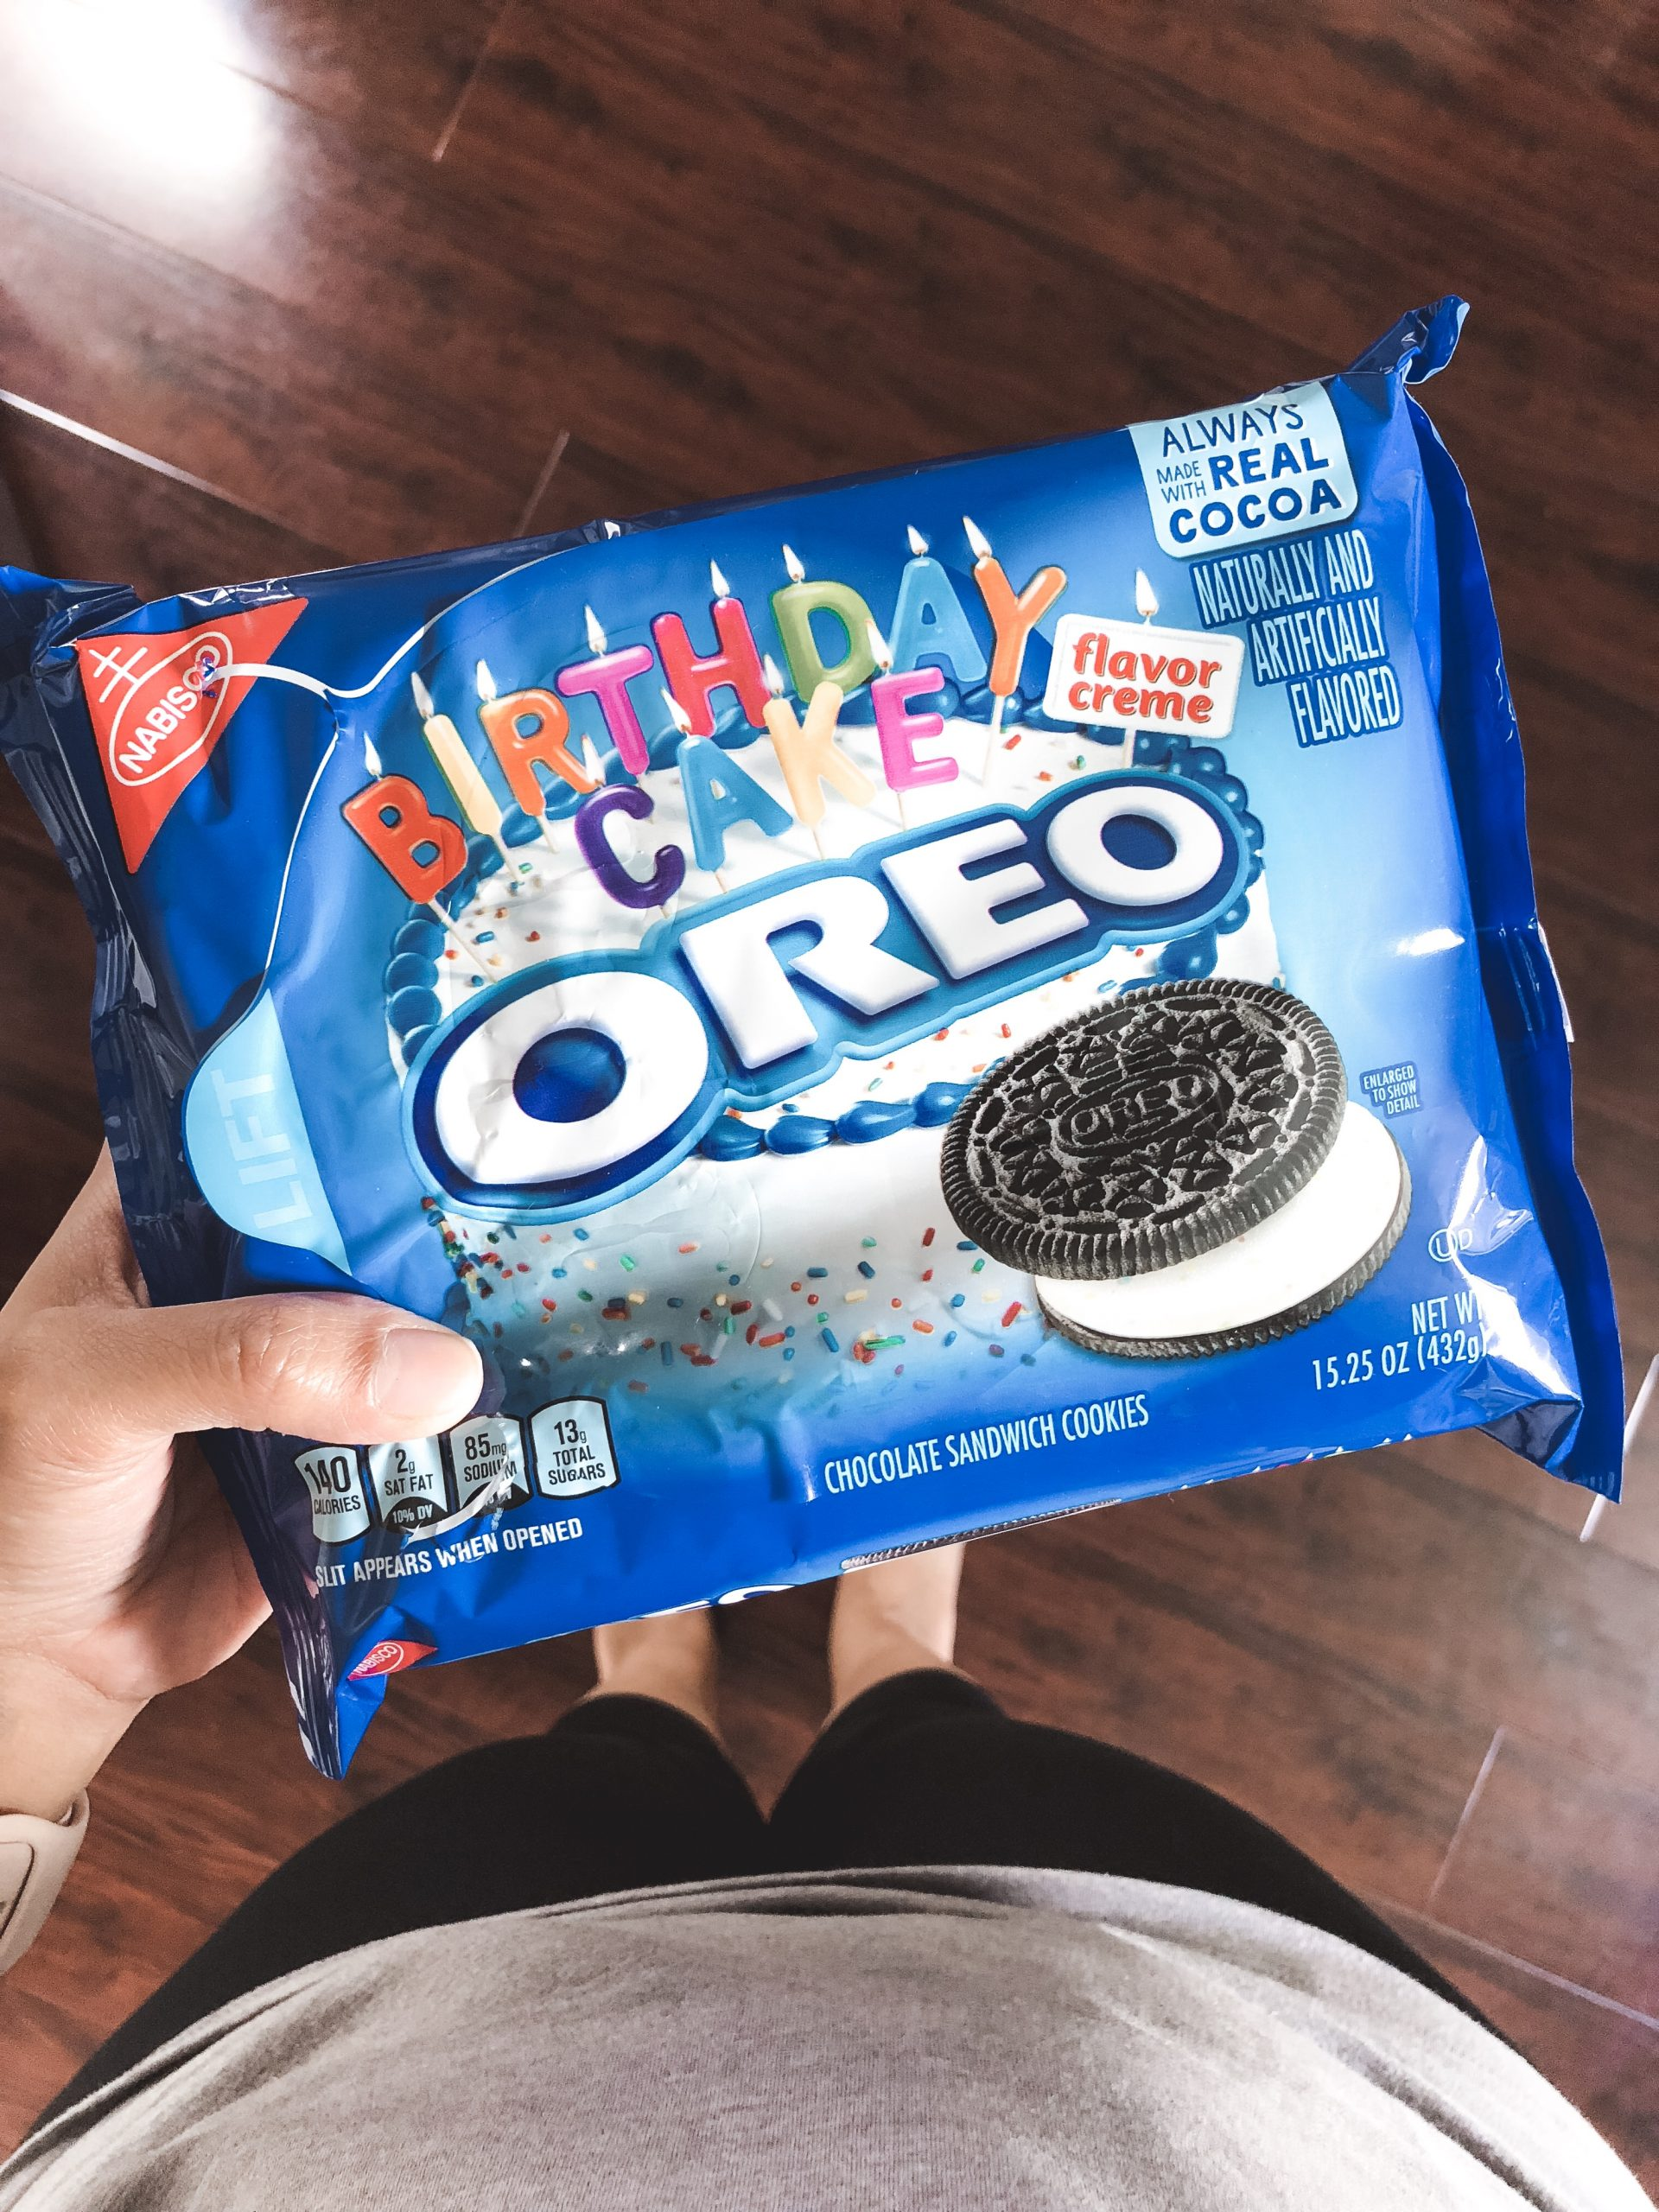 hand holding birthday cake Oreo in package